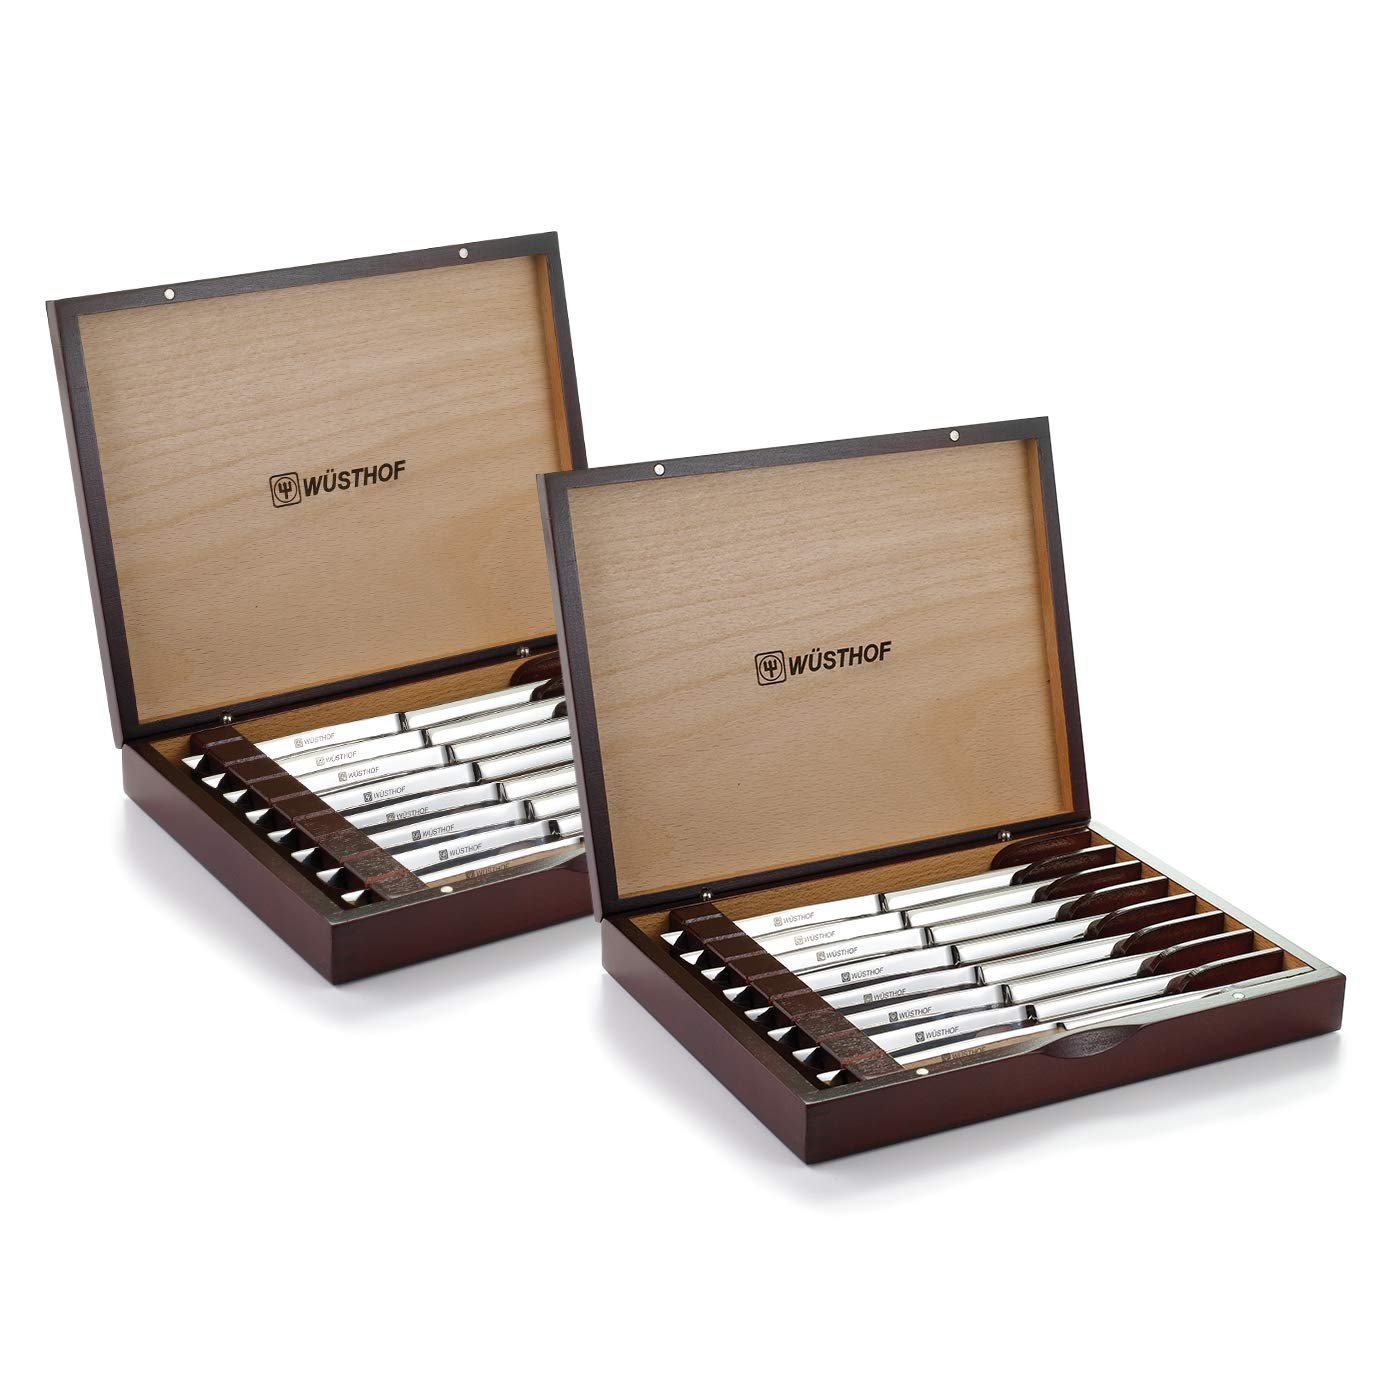 Wusthof 8-Piece Stainless-Steel Steak Knife Set with Wooden Gift Box (Pack of 2 8 Knives in Wood Presentation Box)